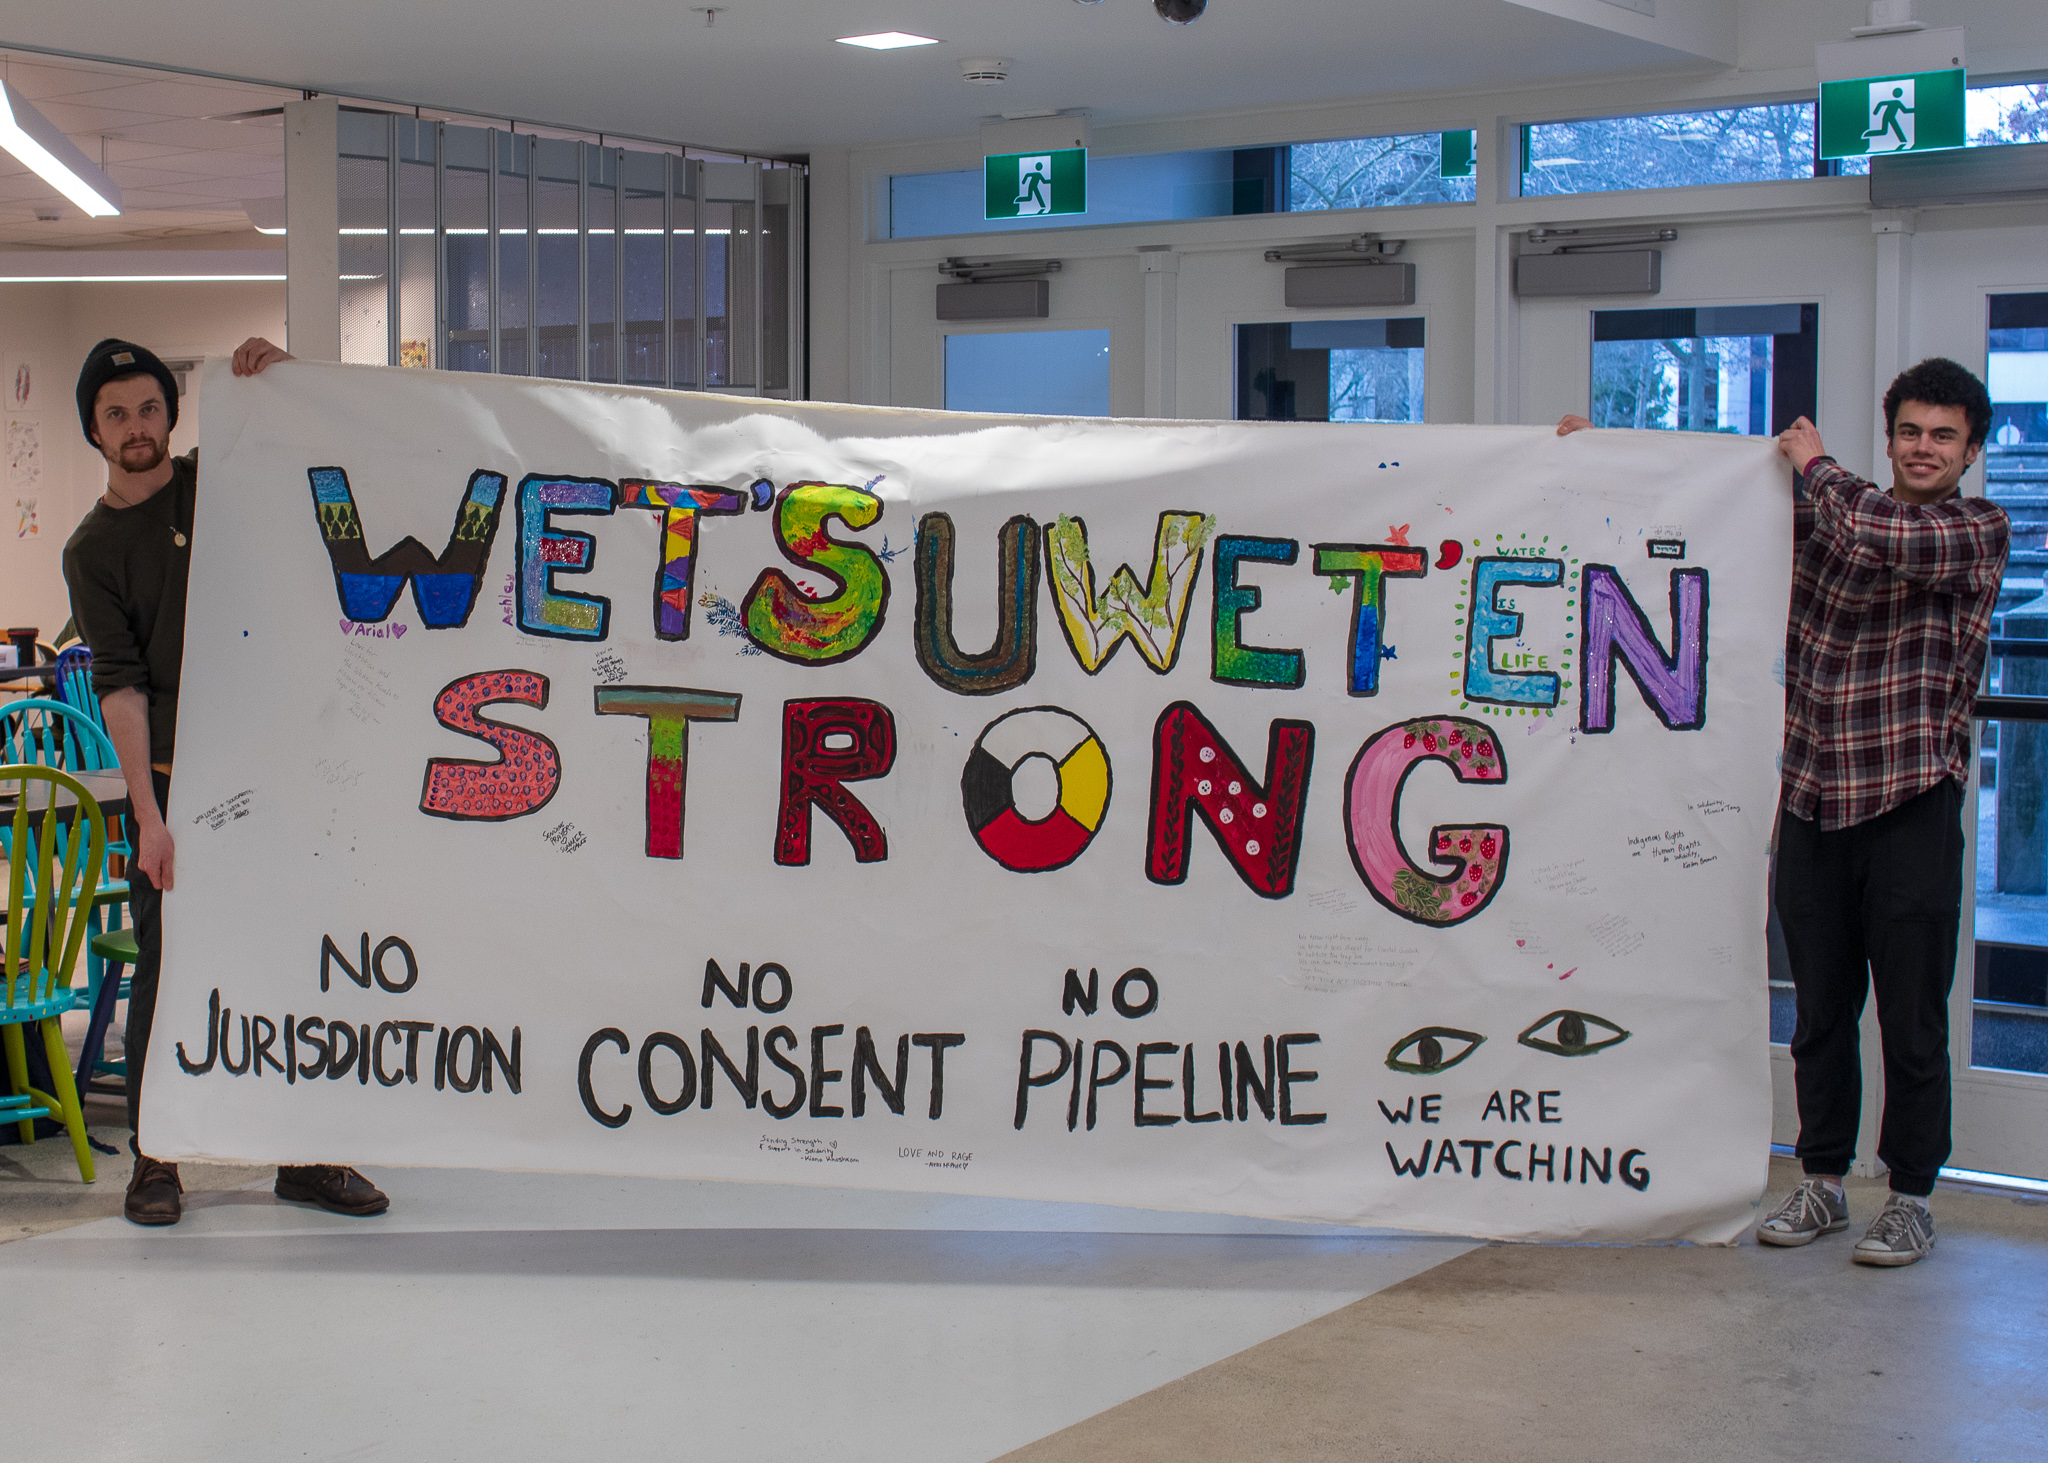 Indigenous student groups raised $750 to support the Wet'suwet'en legal defence fund through their art event.